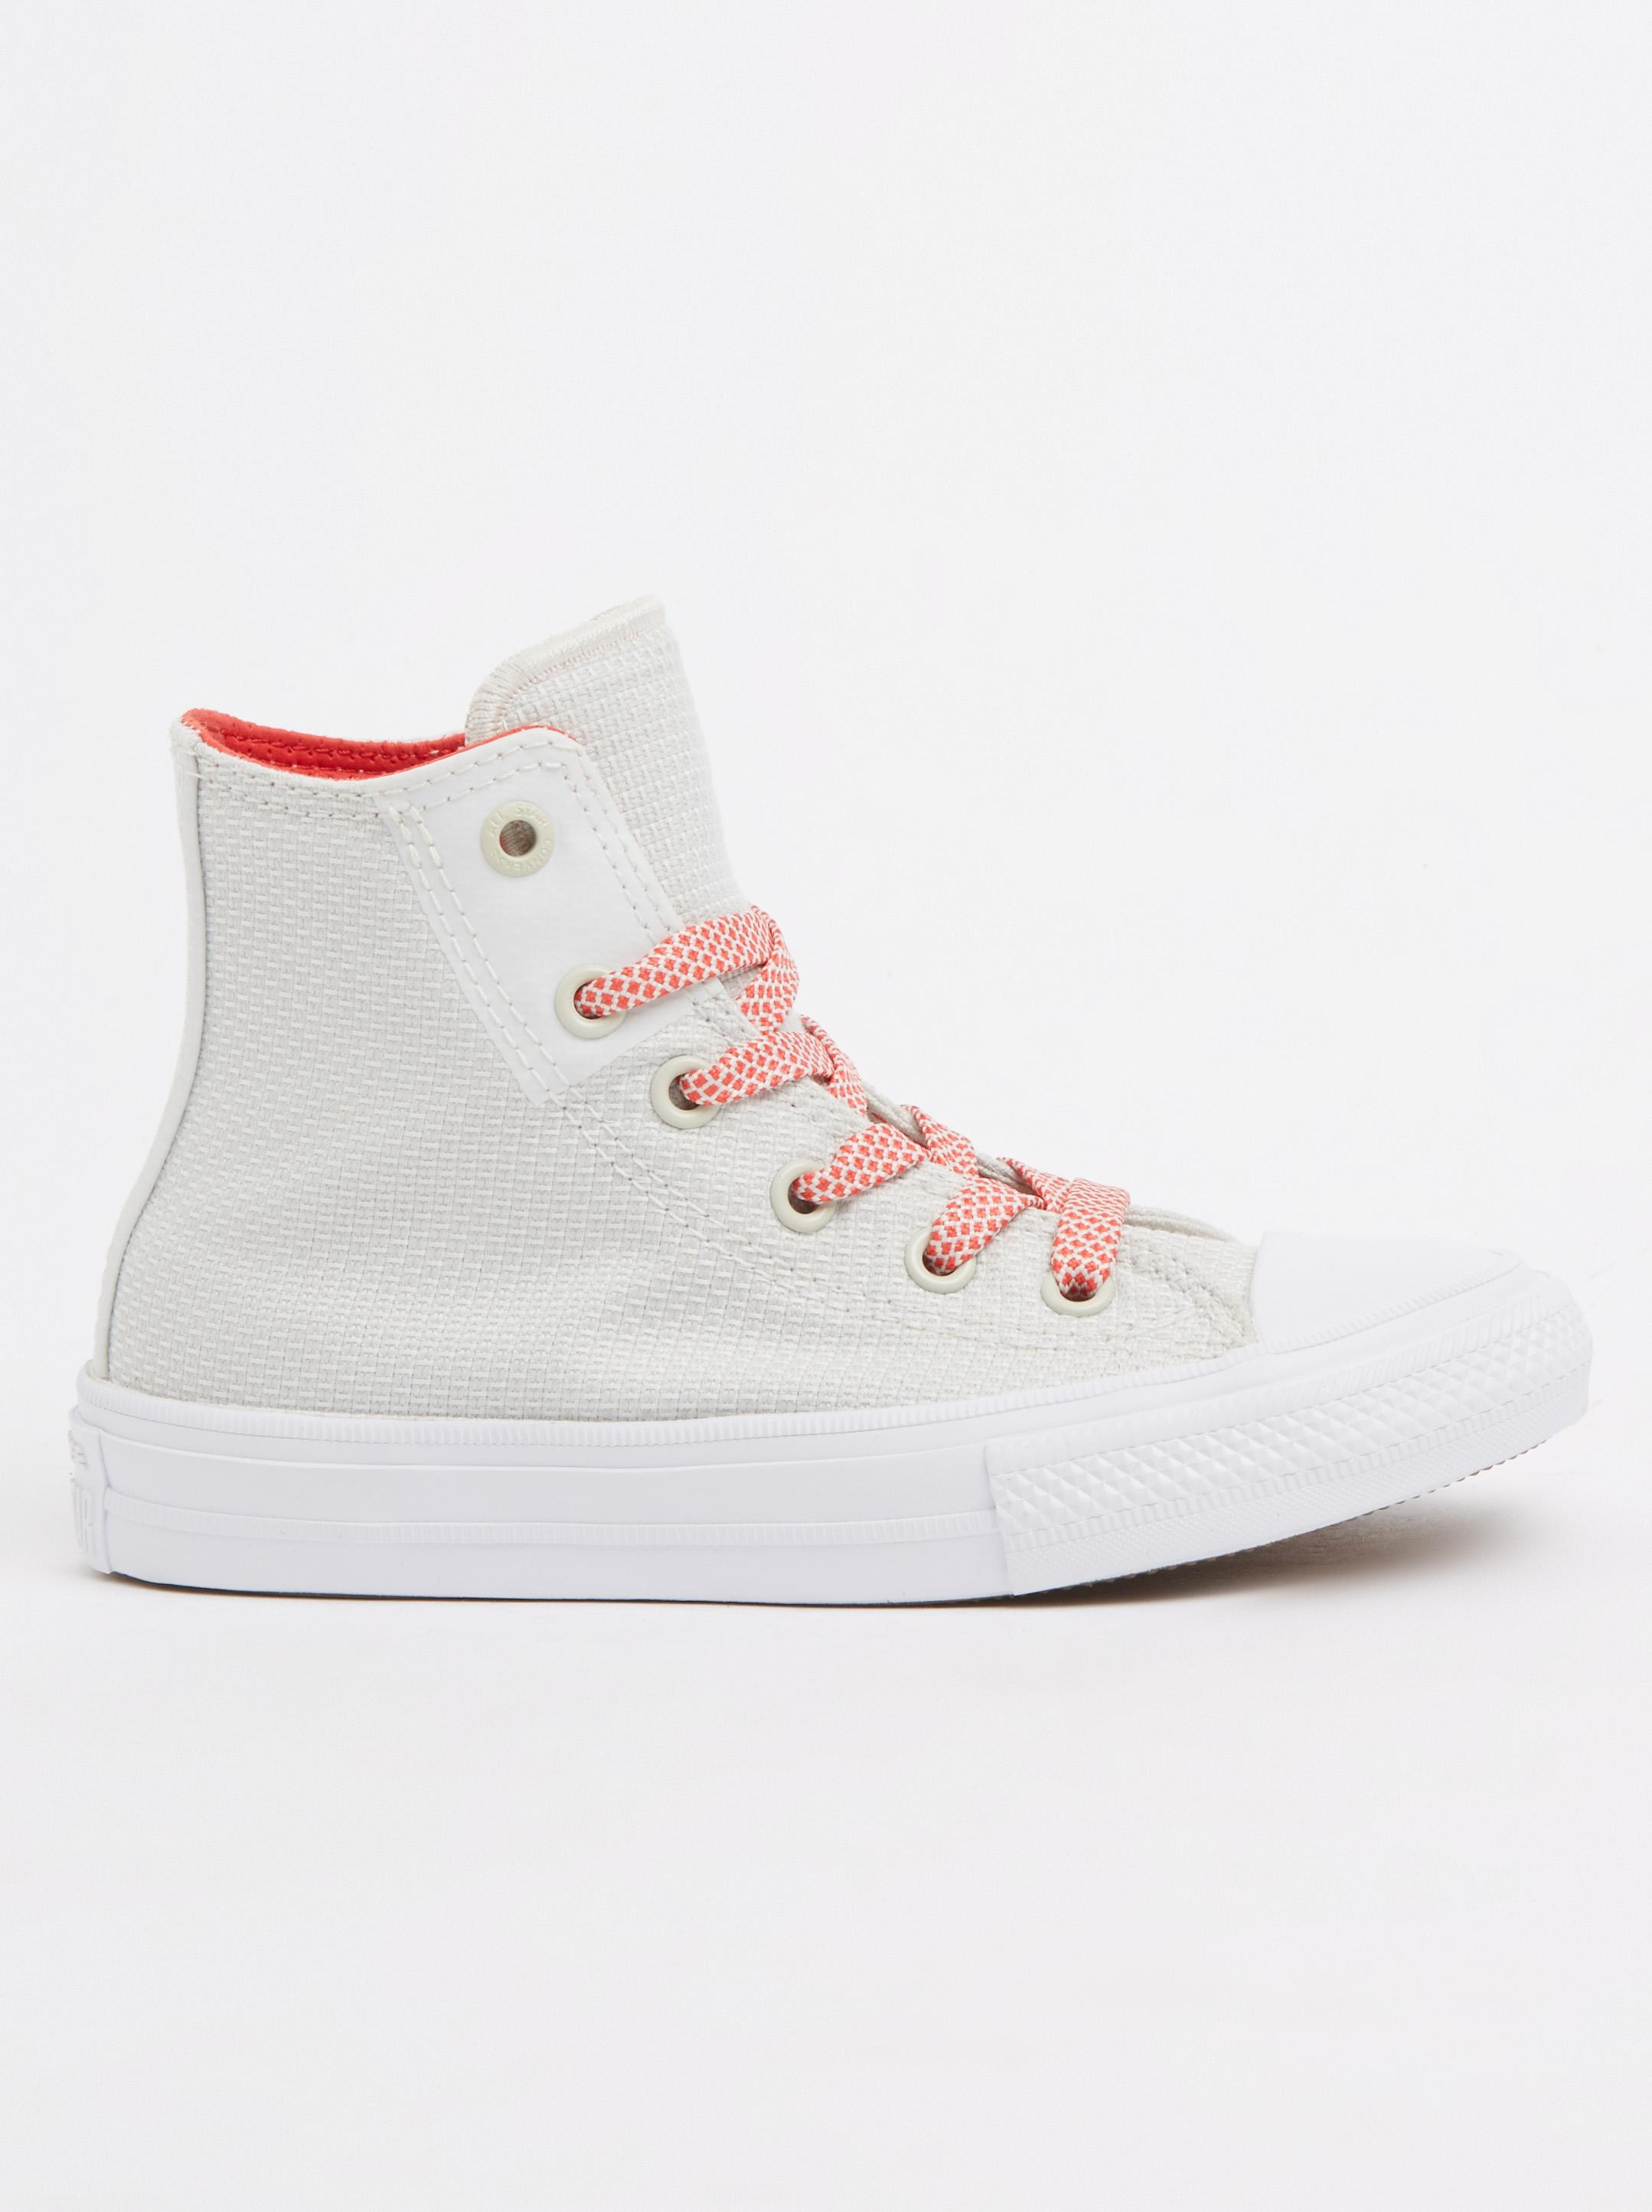 03a99b402d69 Chuck Taylor All Star Off White Converse Shoes